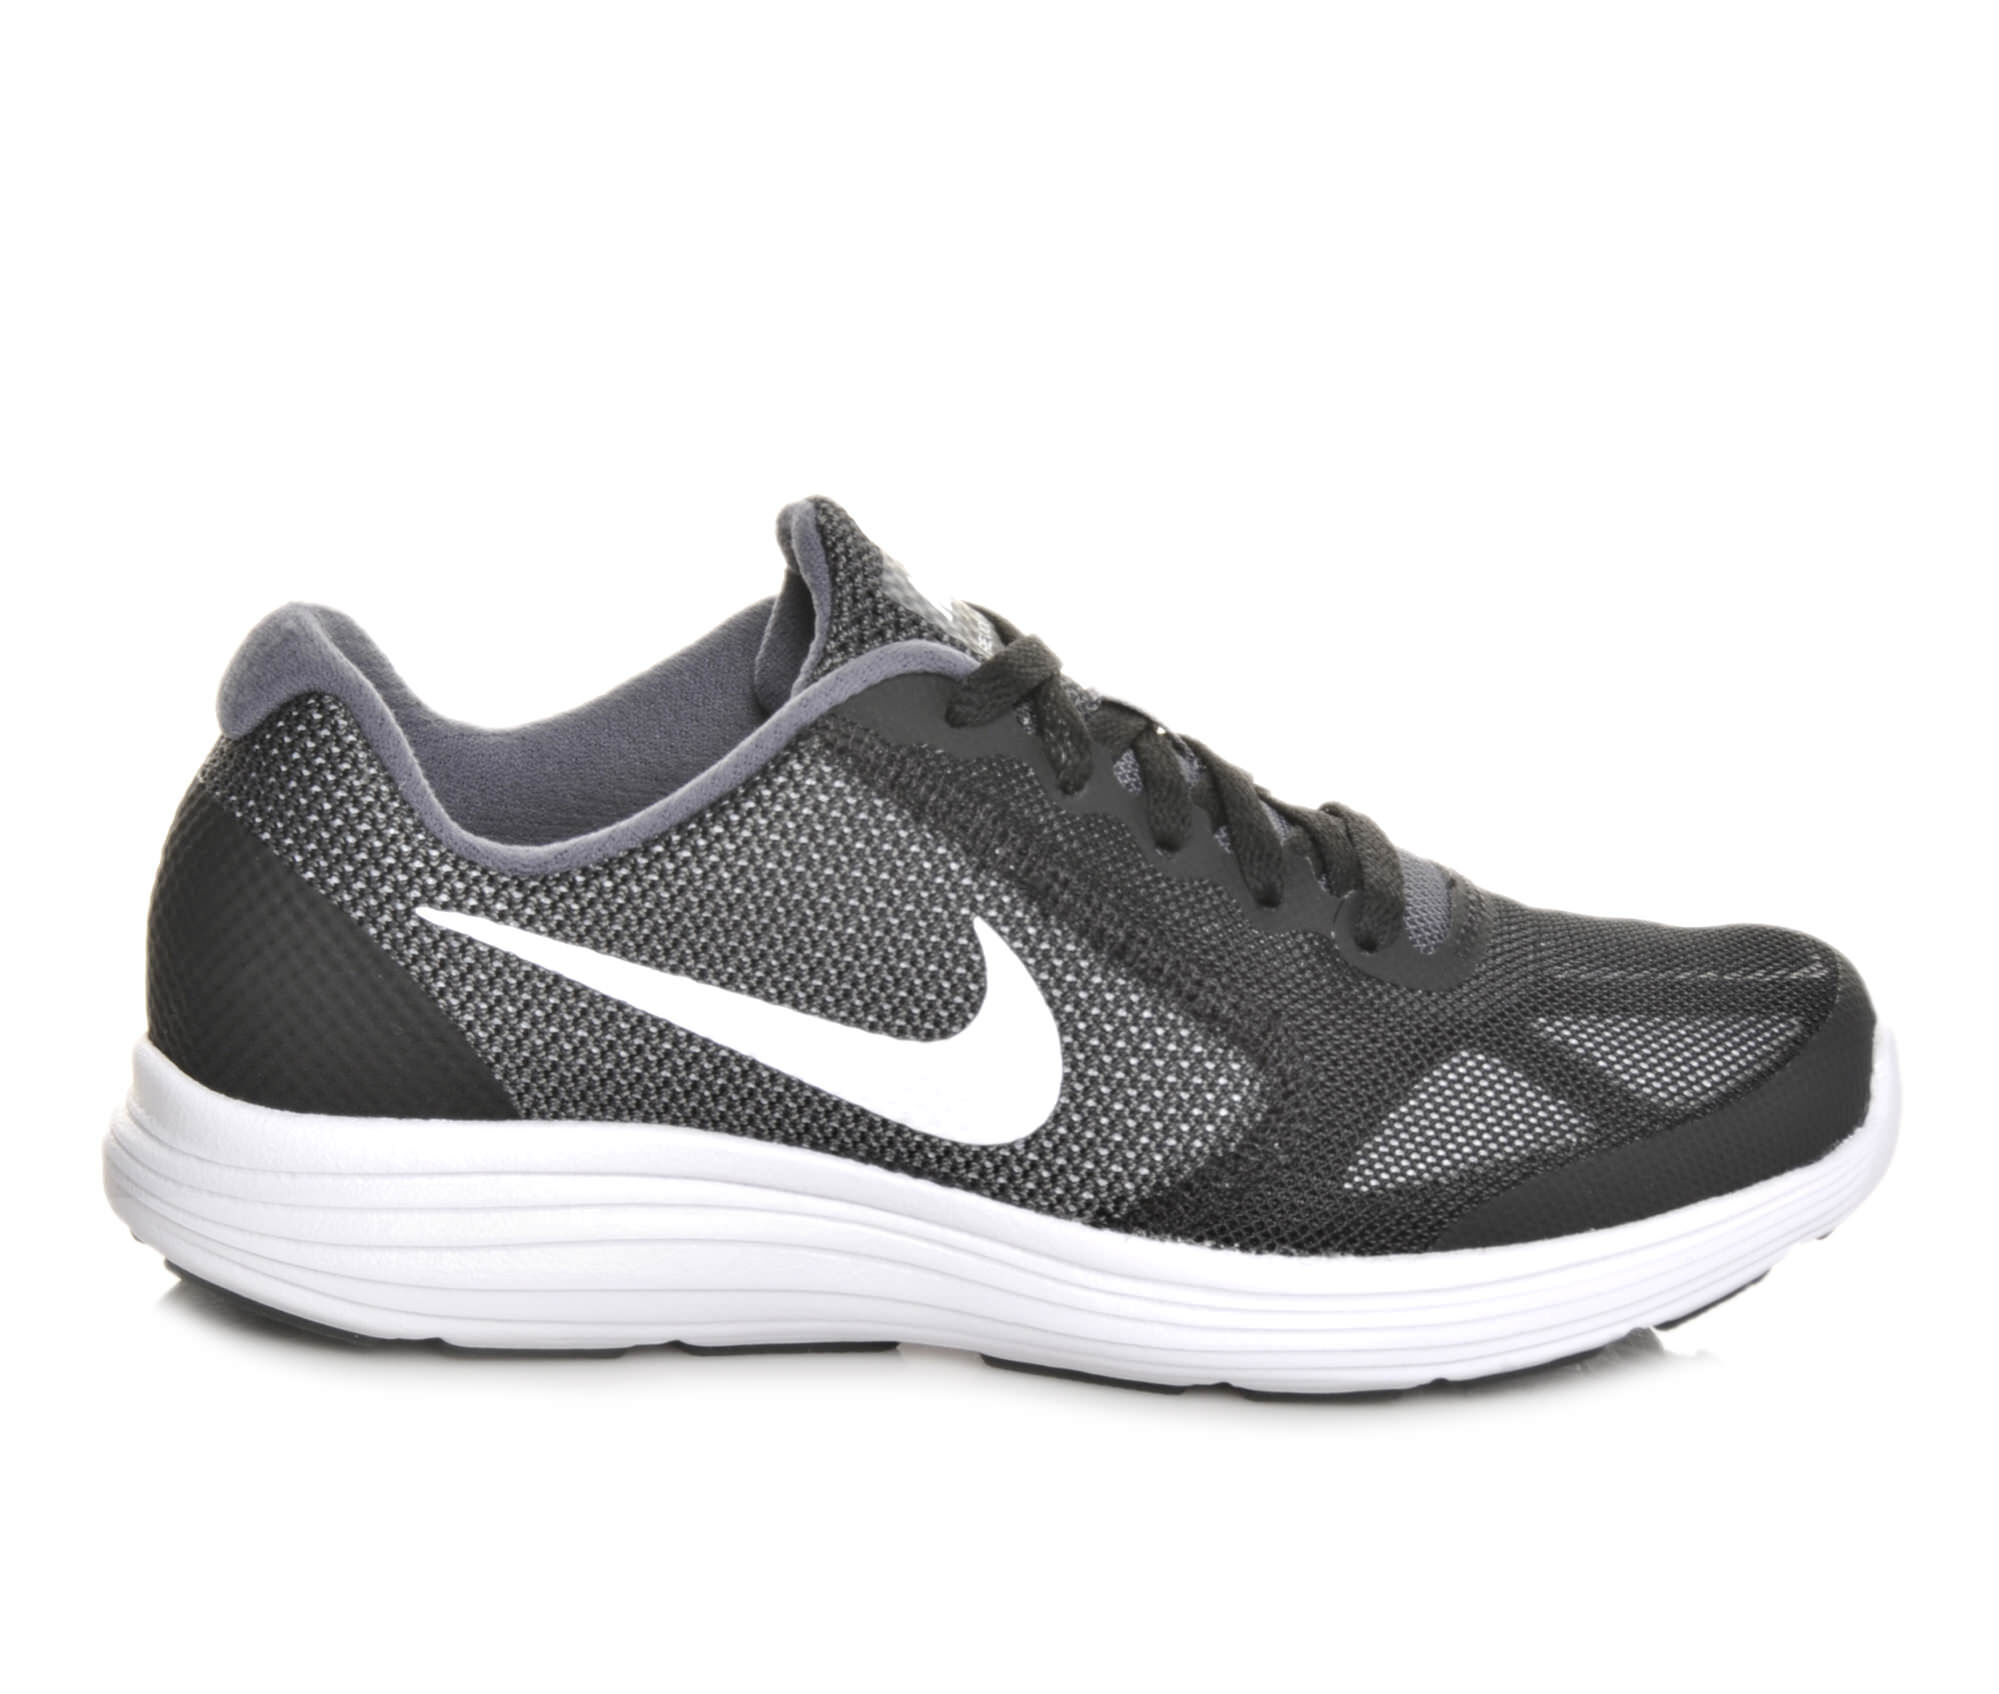 Boys' Nike Revolution 3 3.5-7 Running Shoes